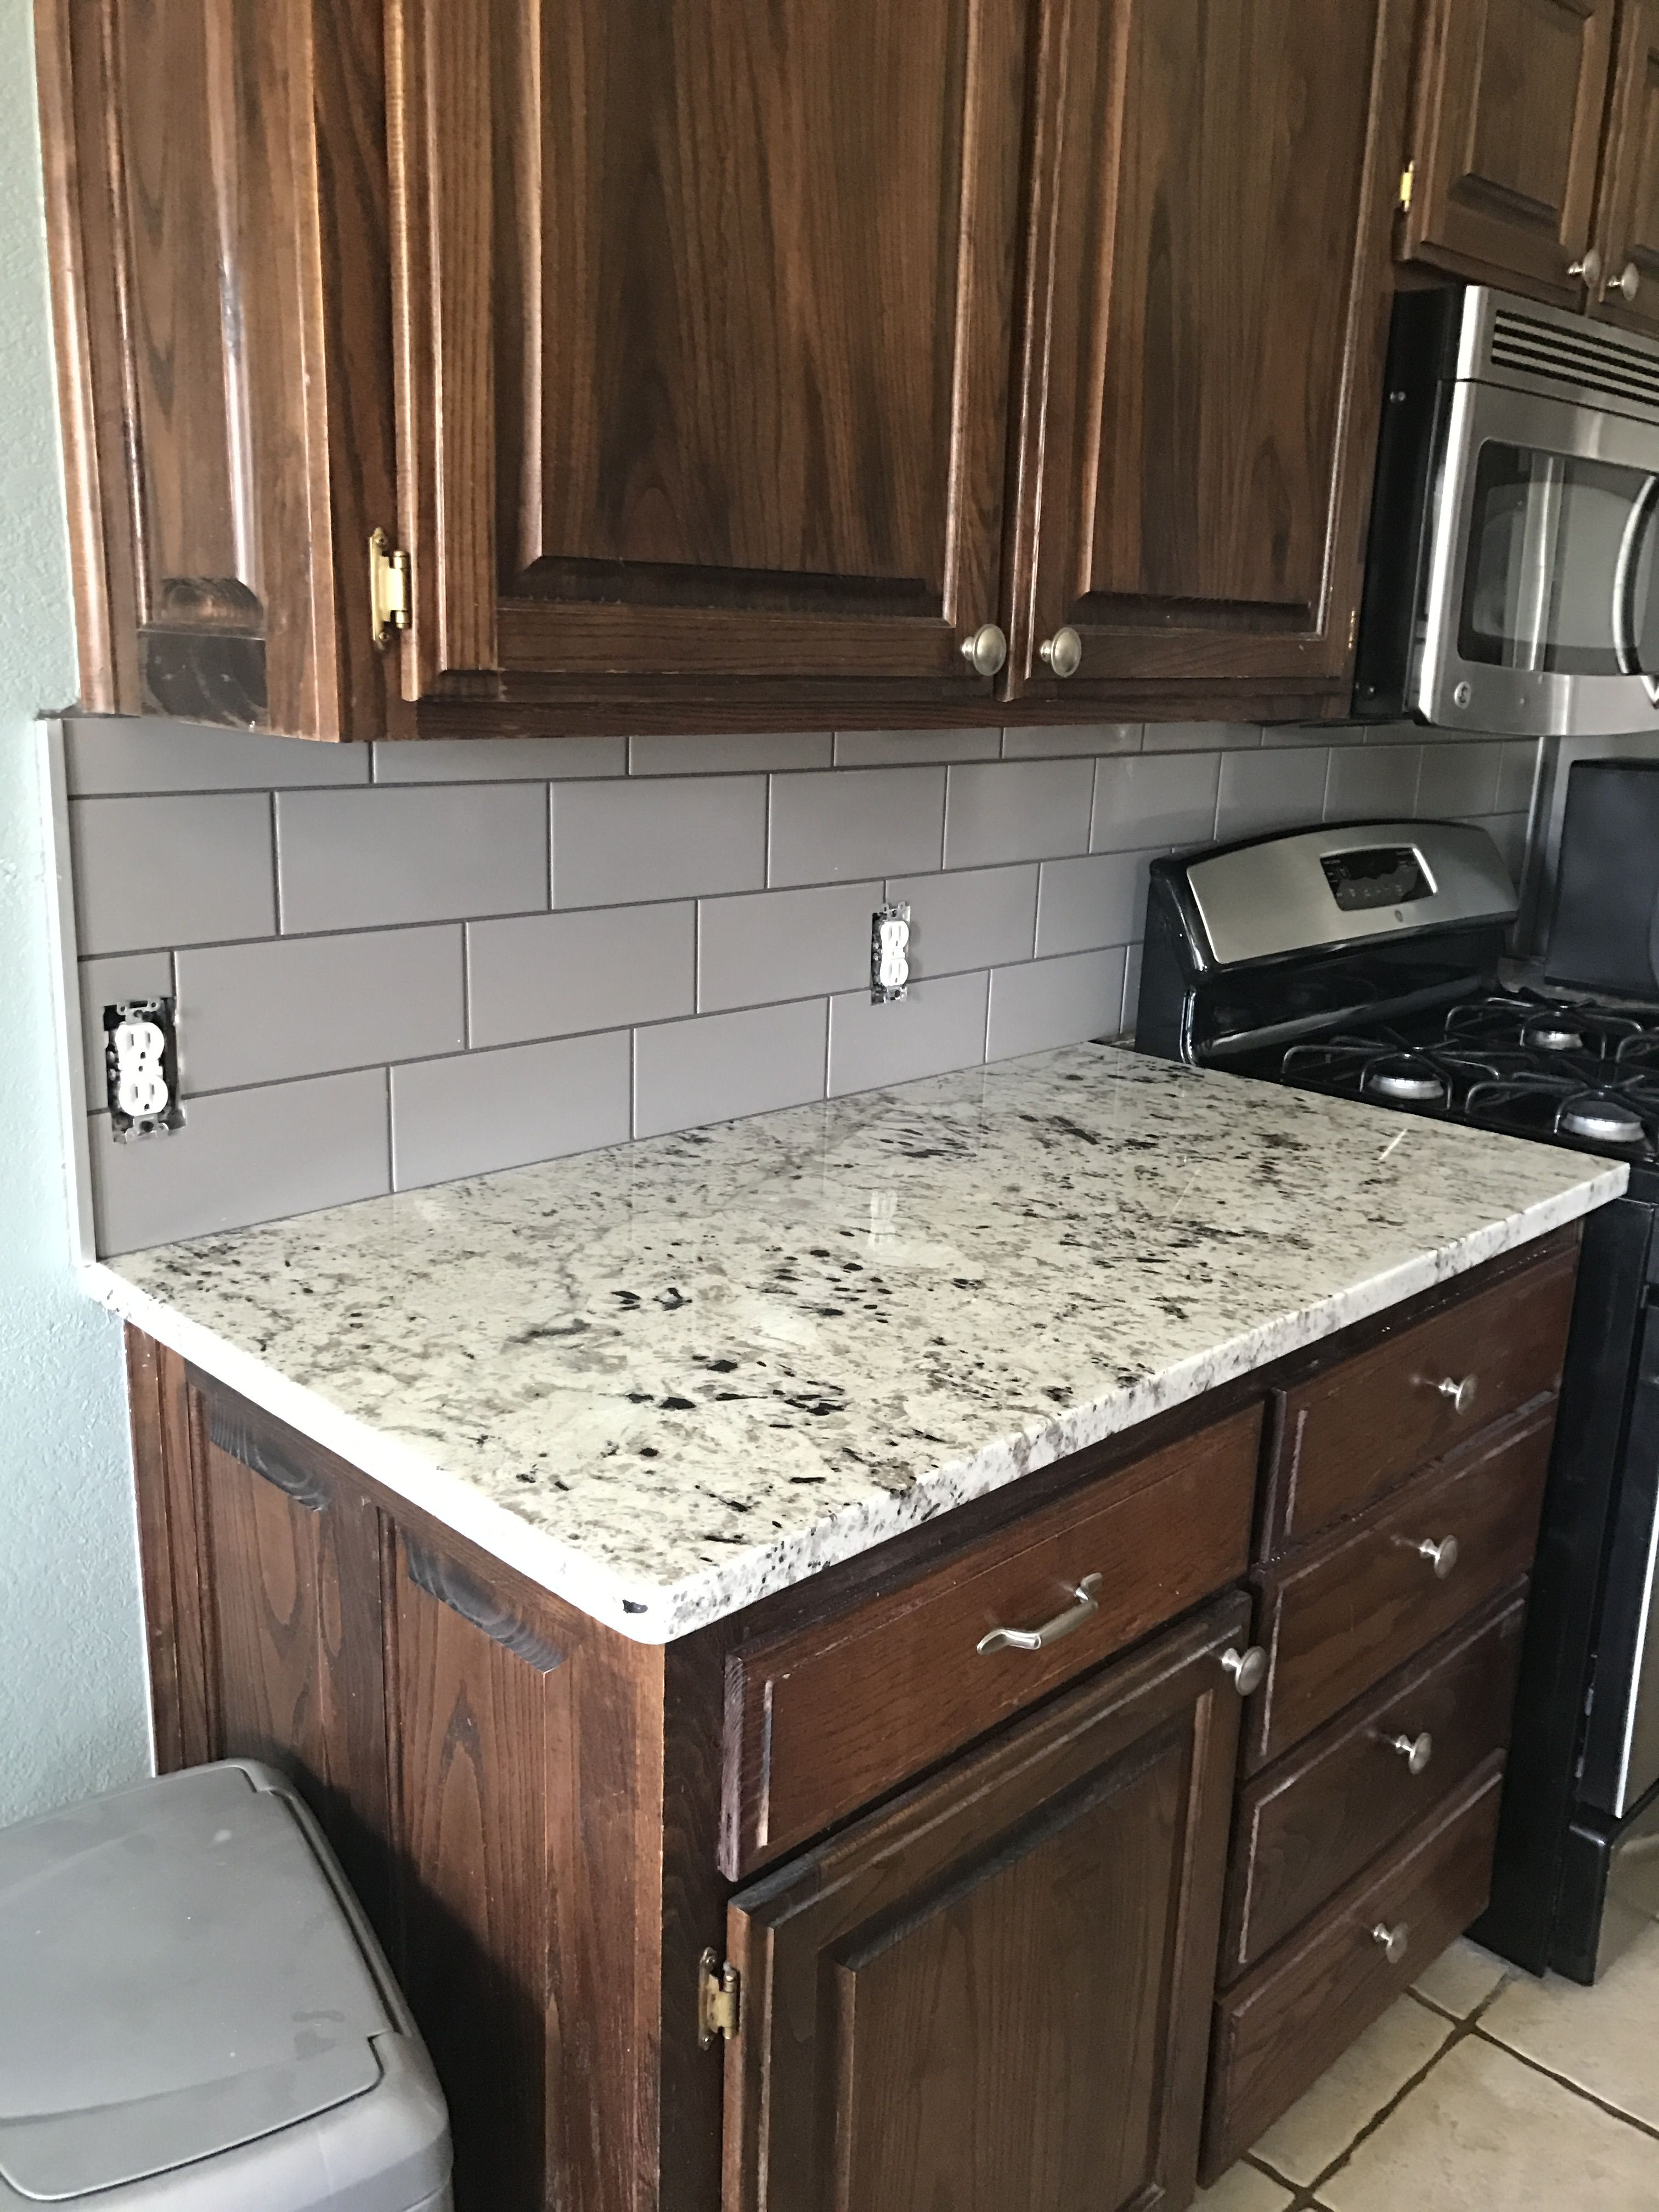 Taupe backsplash and white galaxy granite | Kitchen reno | Pinterest ...